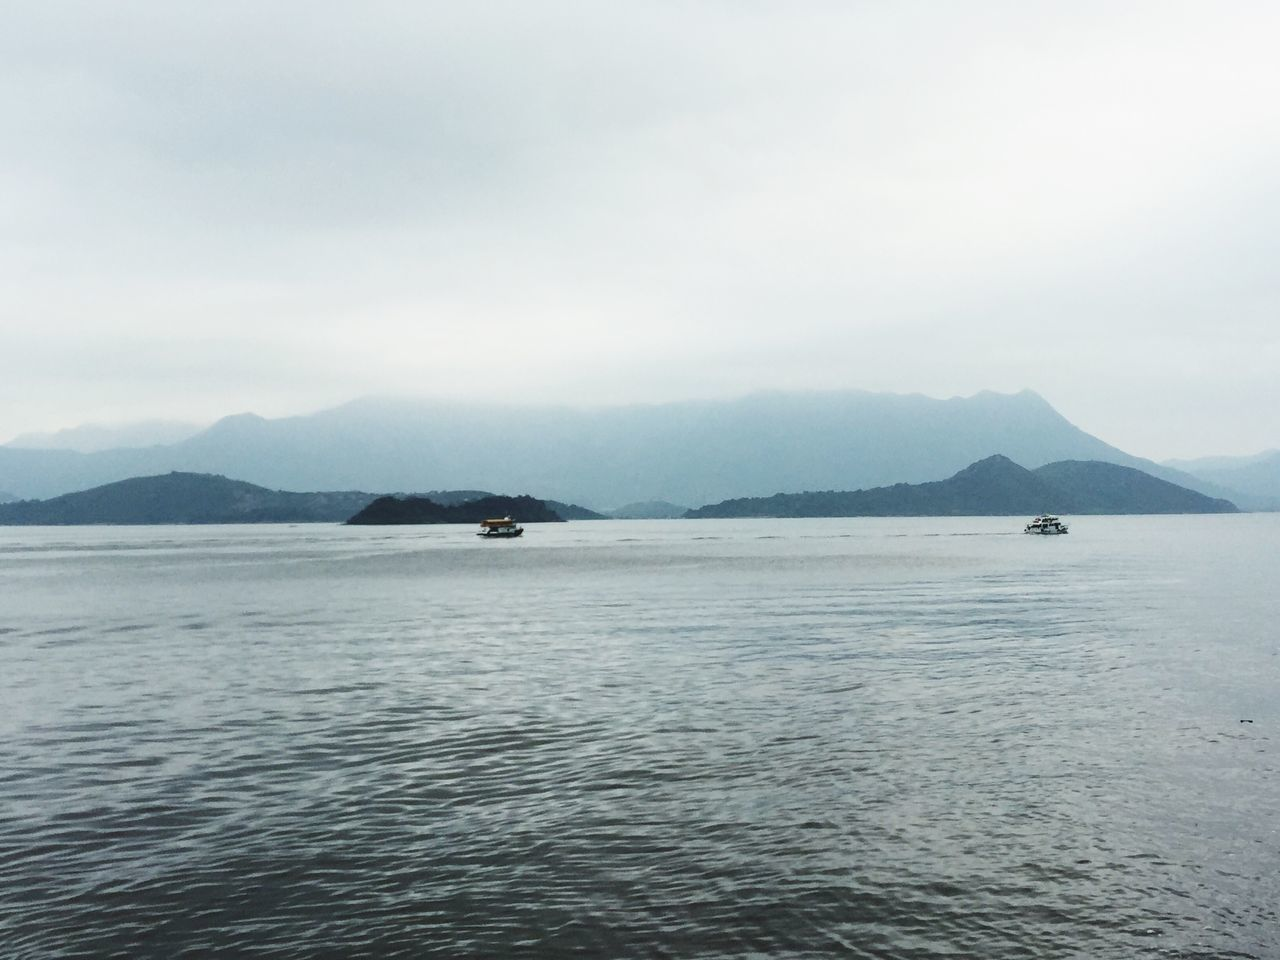 View Of Sea With Mountains In Background